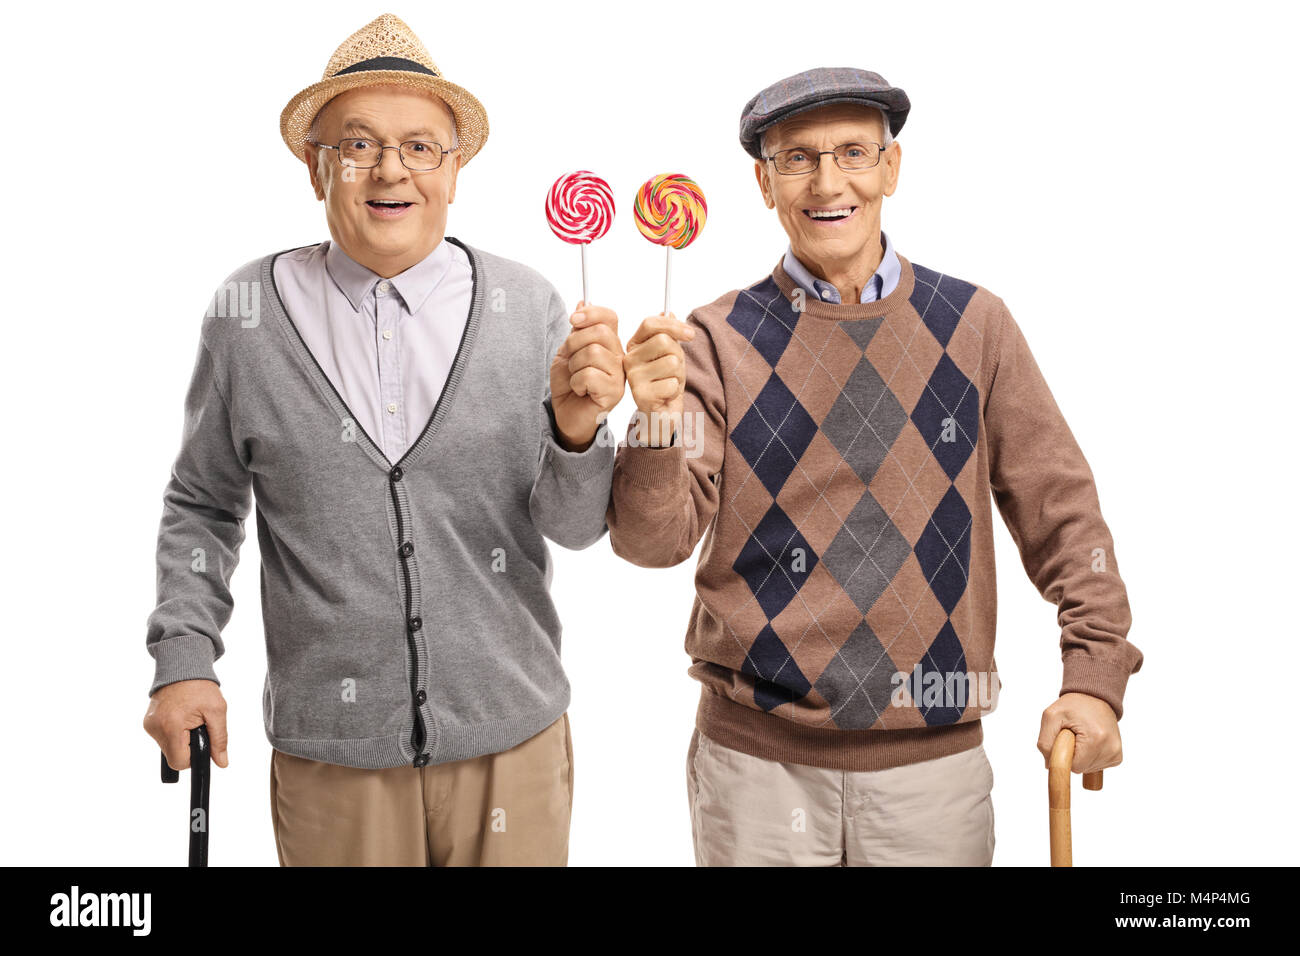 Seniors with lollipops isolated on white background - Stock Image